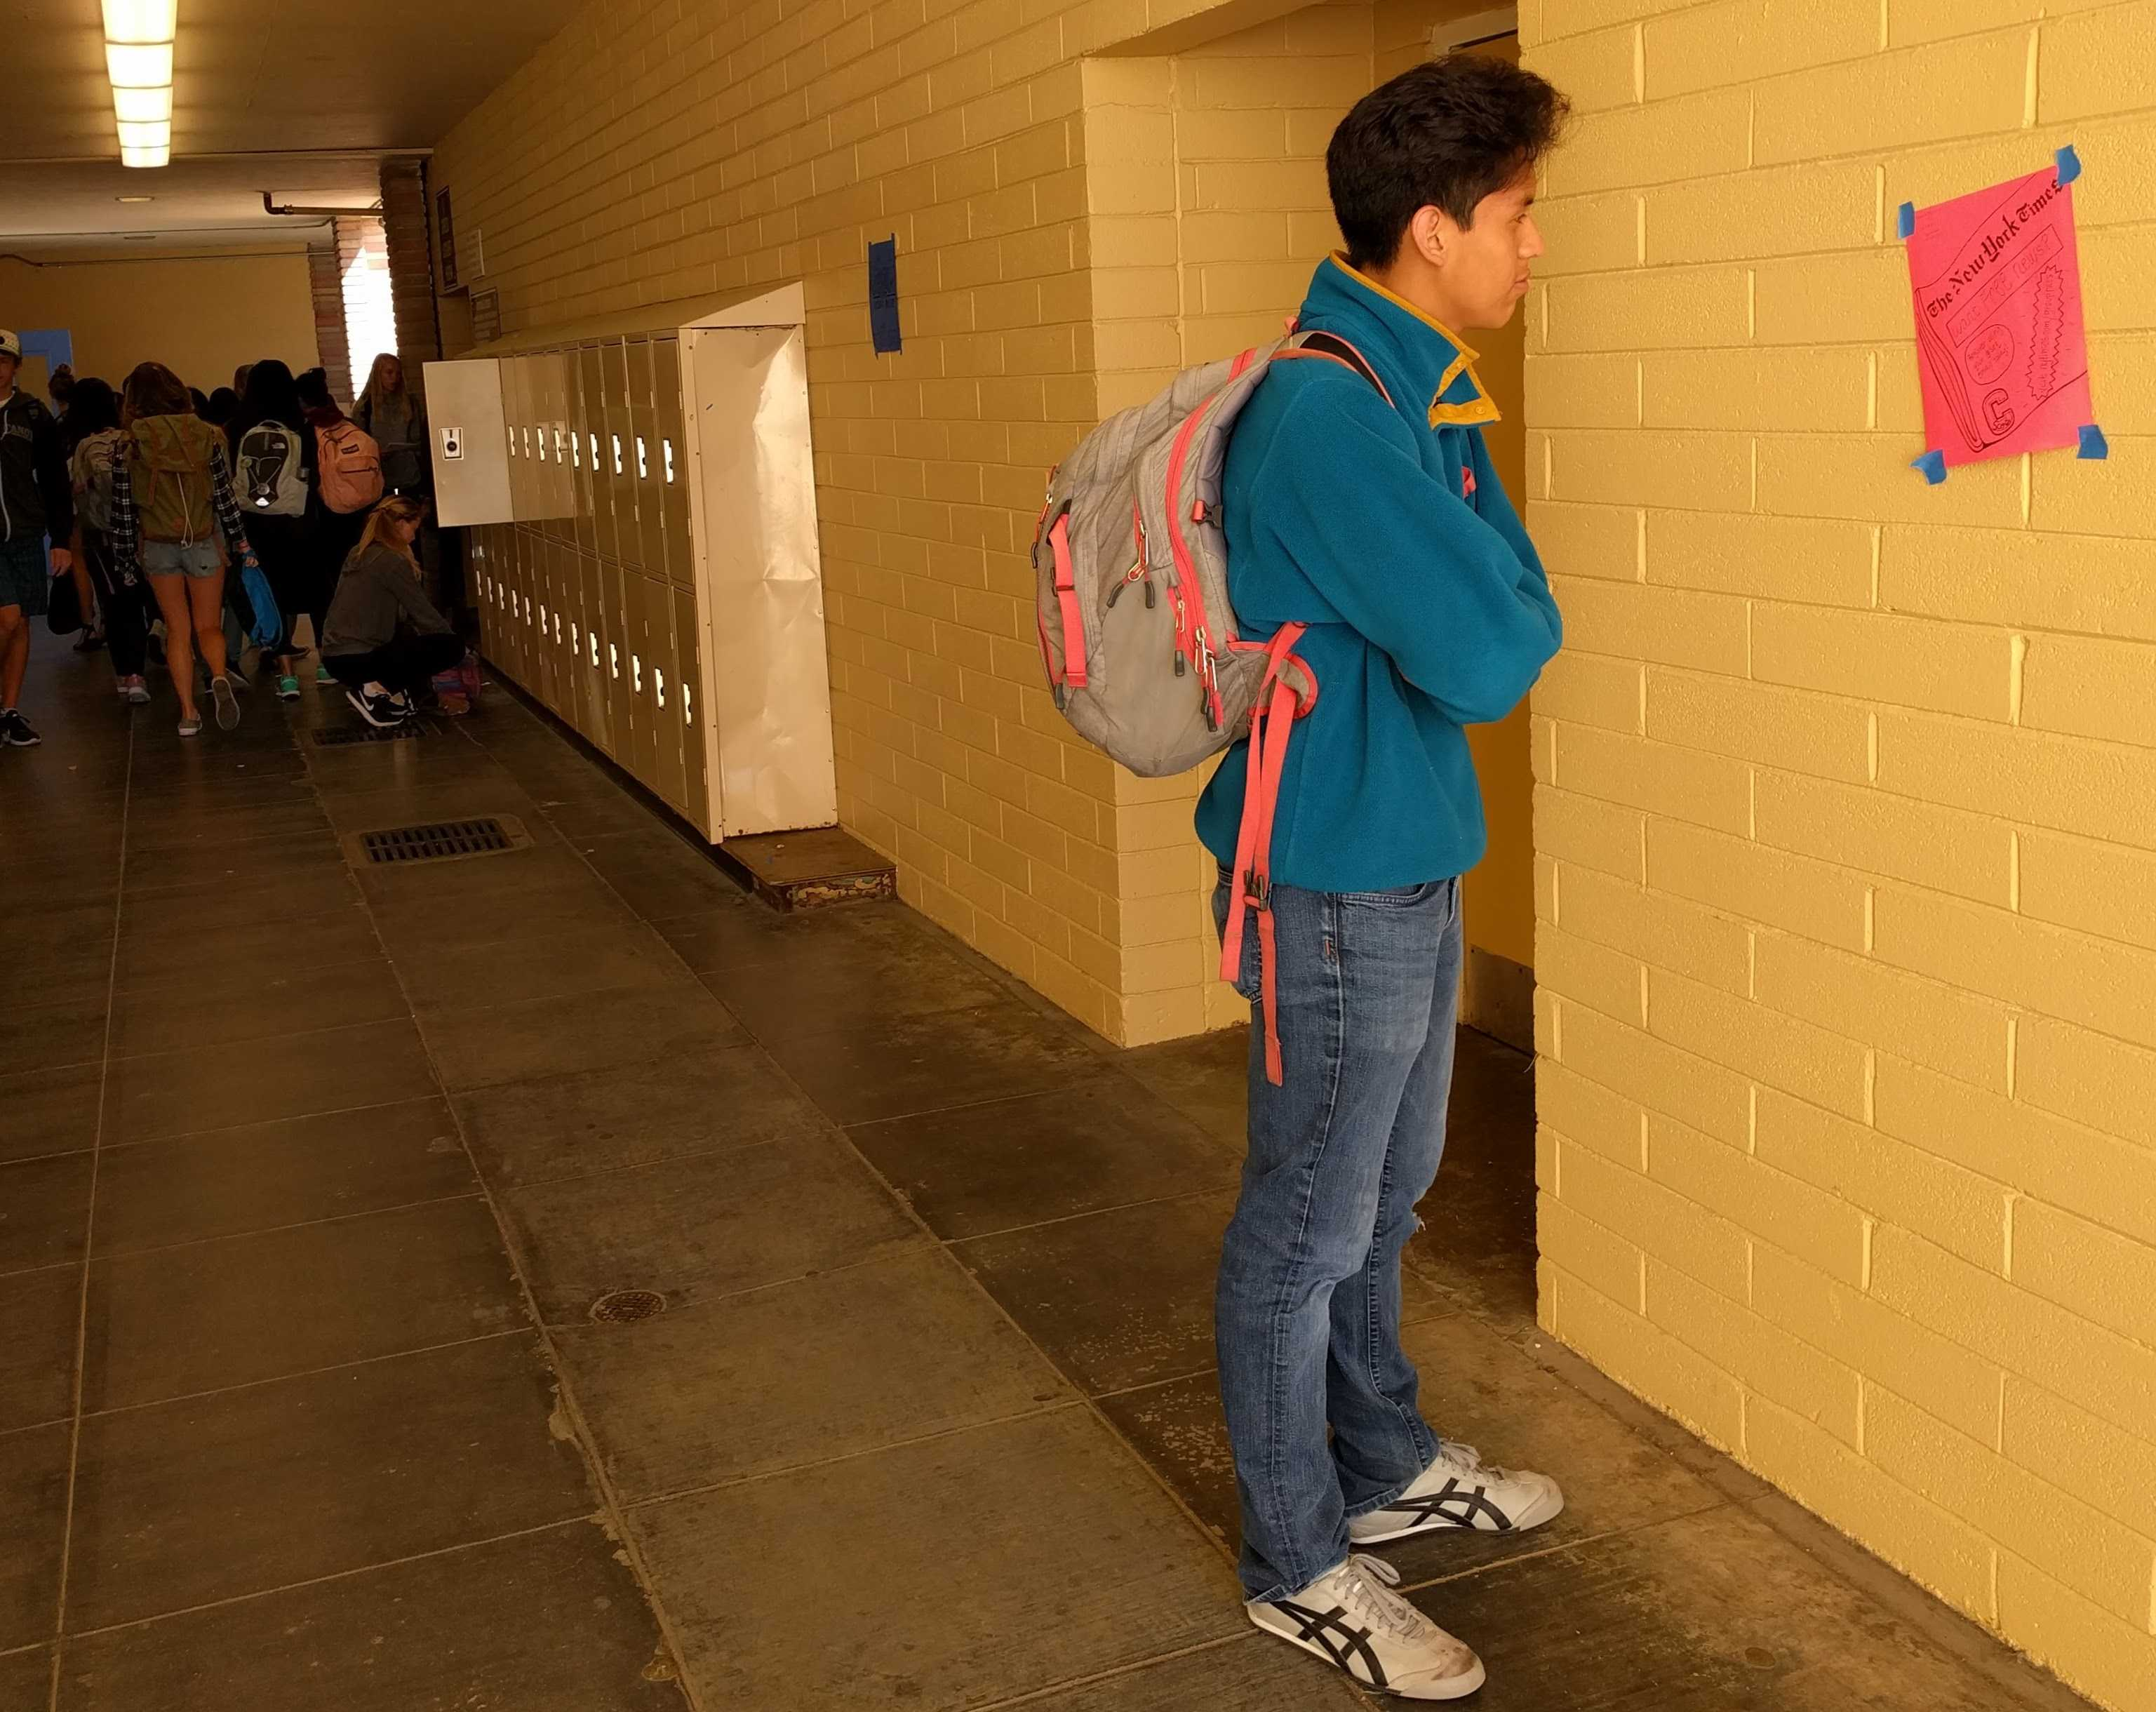 Sophomore William Castro-Ramirez examines a poster for an upcoming school activity.